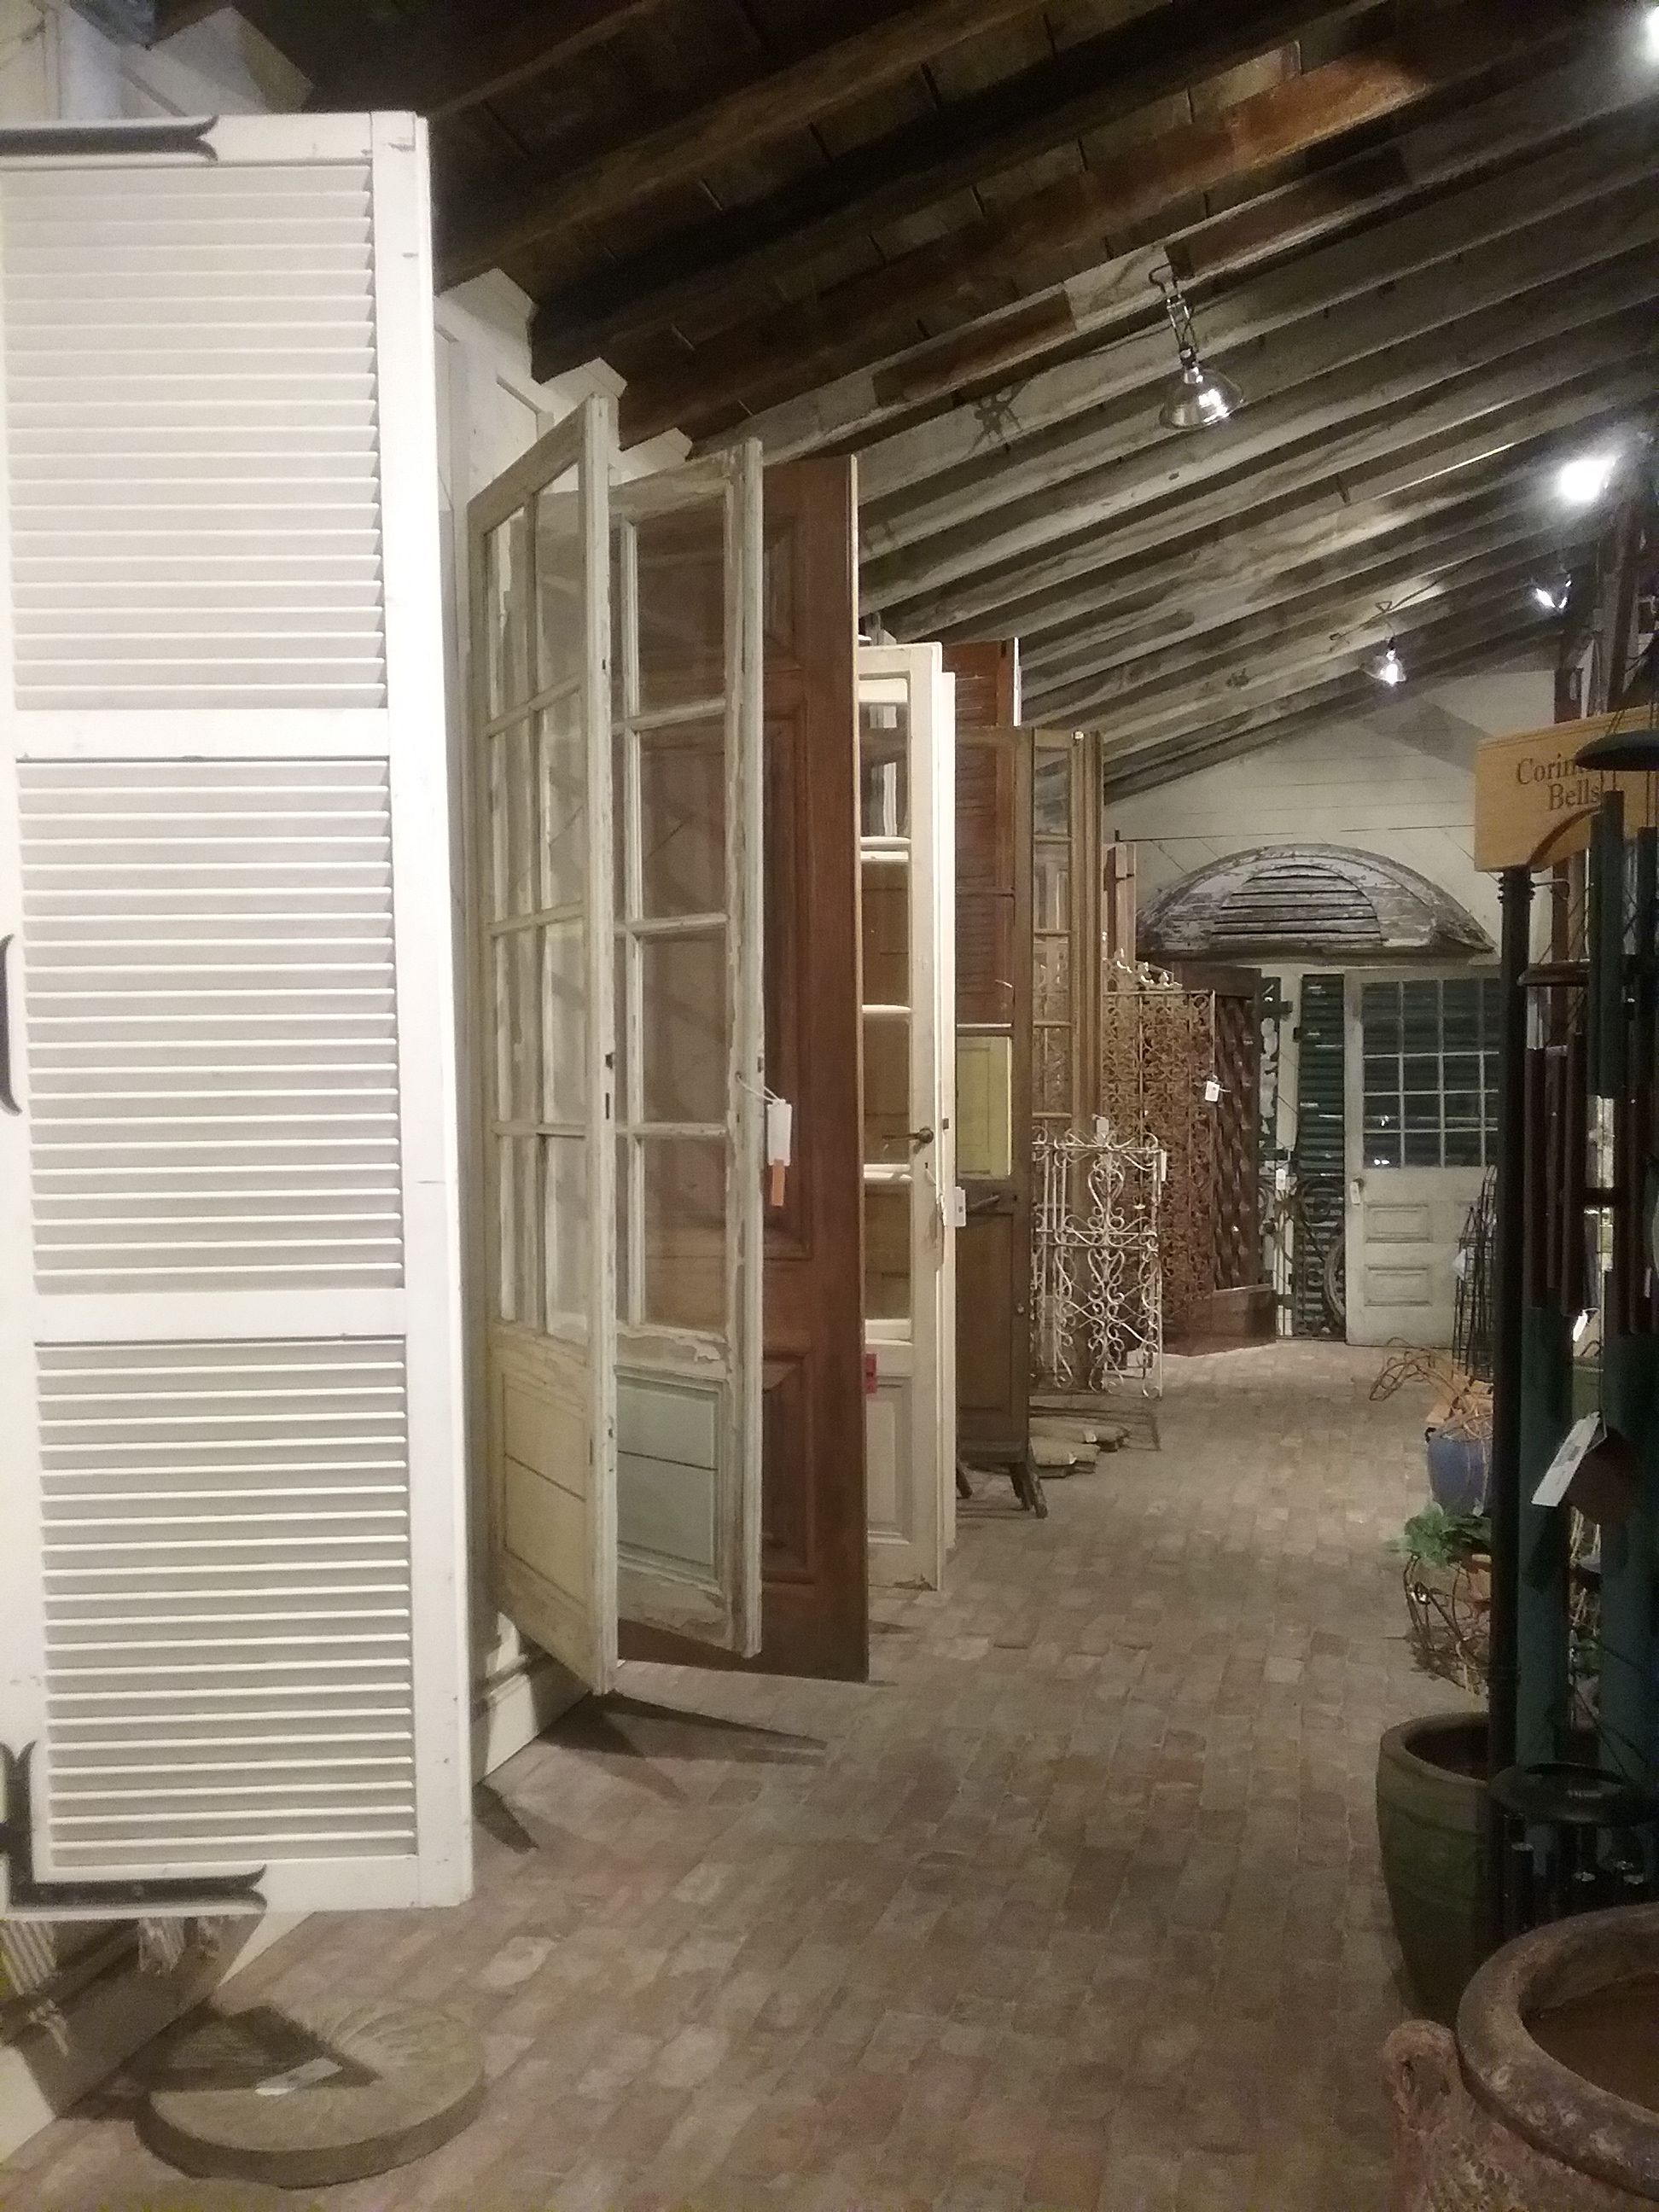 Scores of doors at Palladio Home and Garden stores these are located inside Palladio Garden & Scores of doors at Palladio Home and Garden stores these are ...